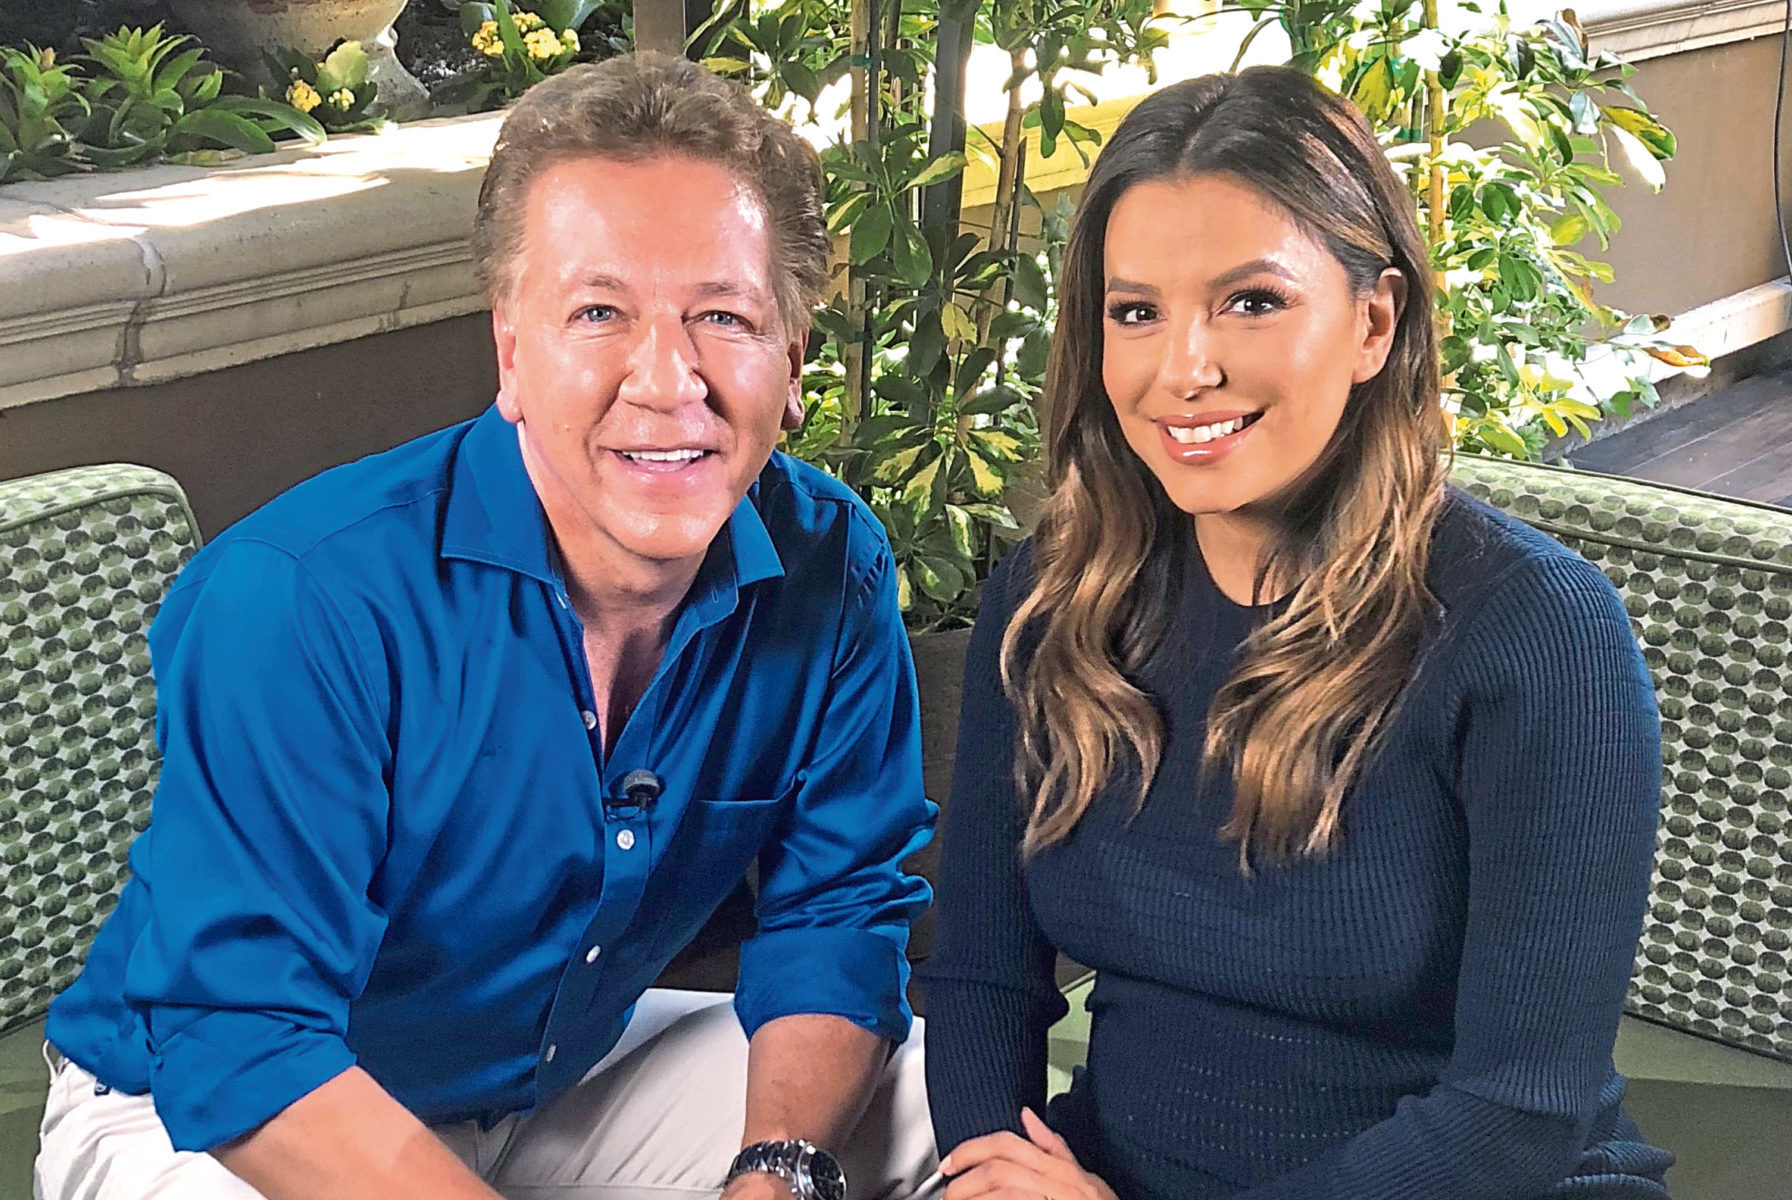 Ross King and Eva Longoria